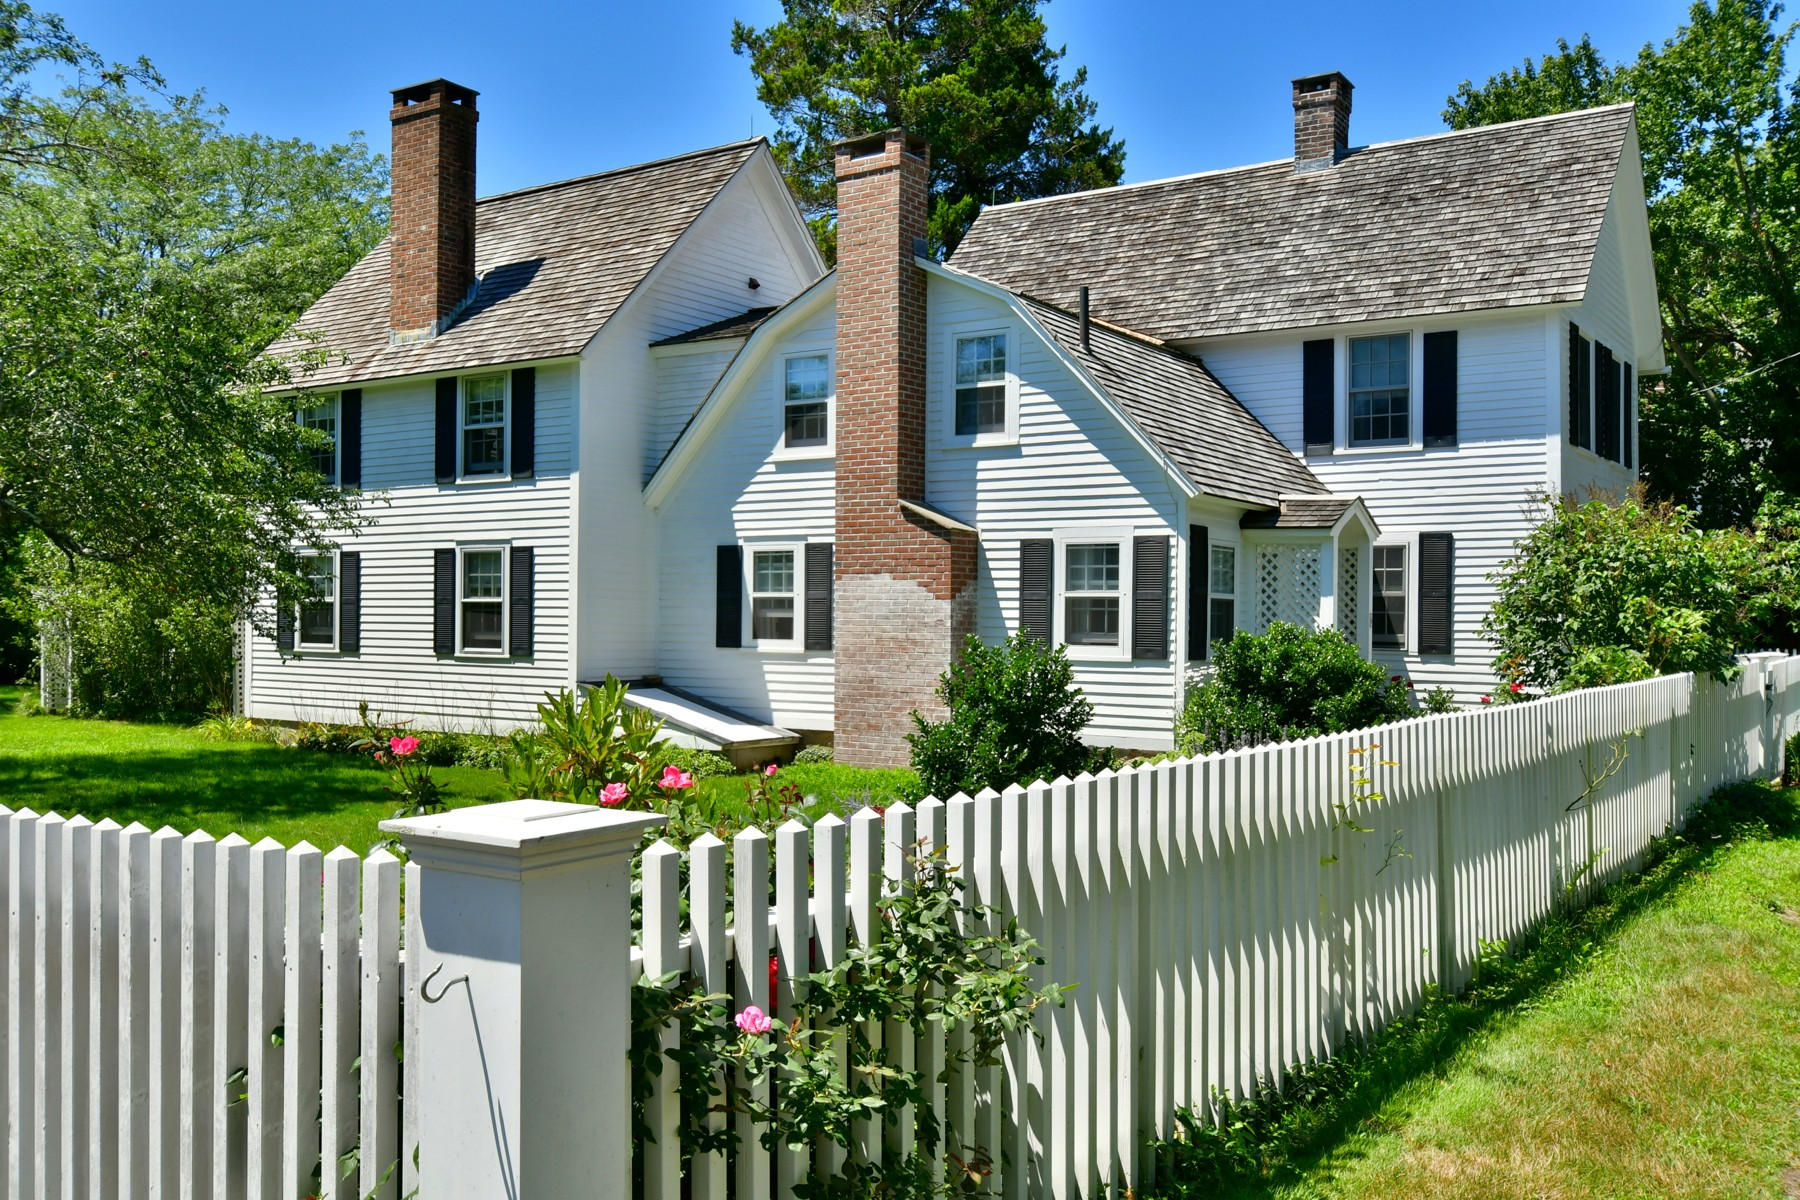 Casa Unifamiliar por un Venta en Set In The Heart of Old Lyme Village 6 Ferry Road Old Lyme, Connecticut 06371 Estados Unidos